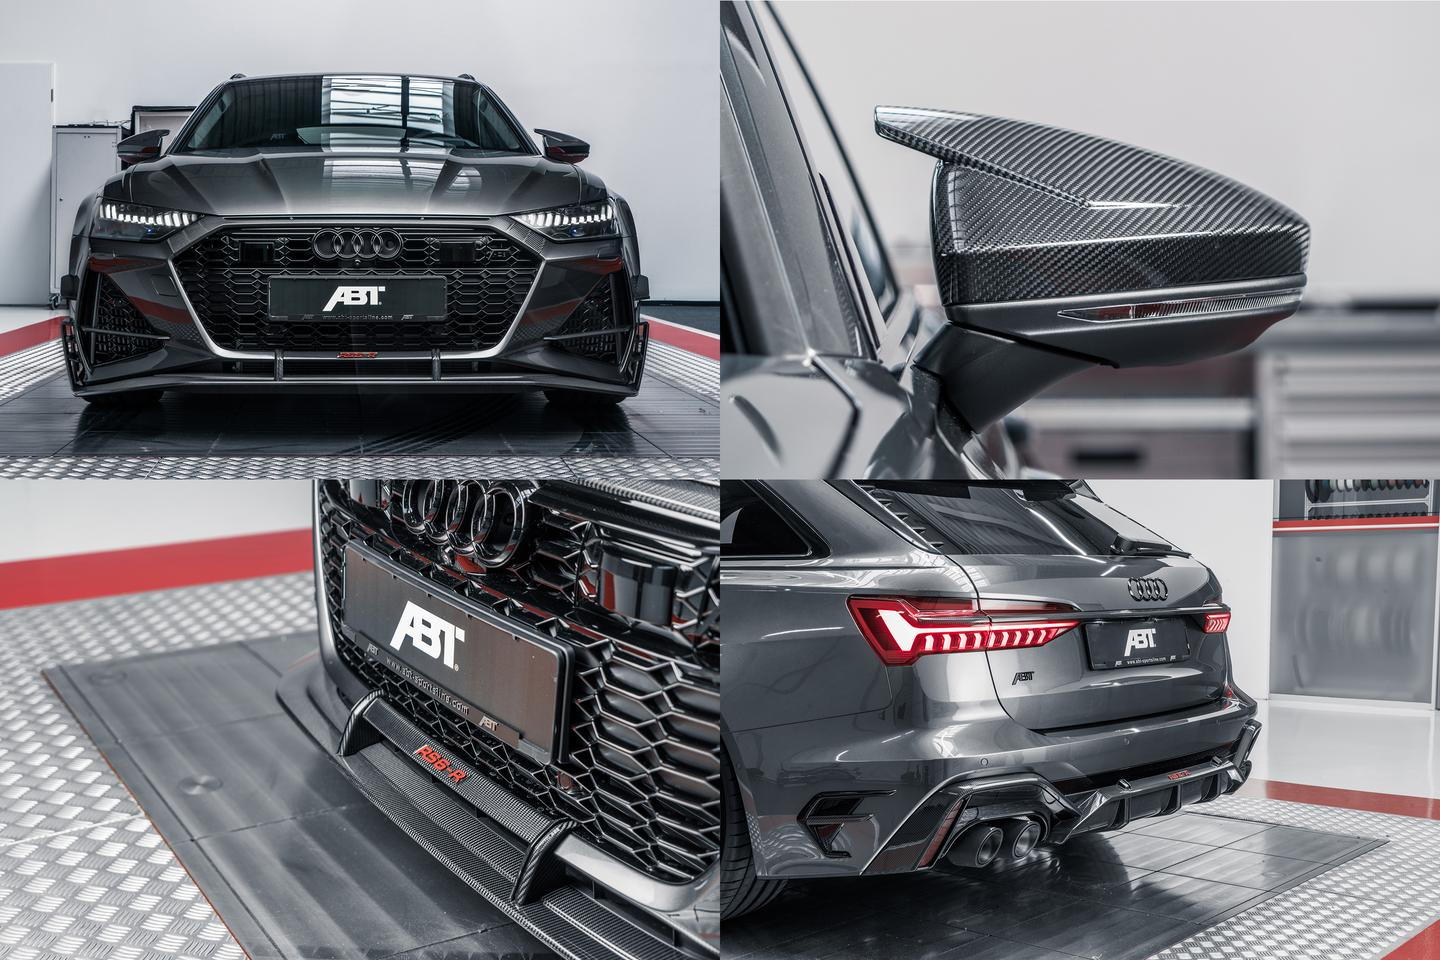 The Audi ABT RS6-R comes with a complete carbon fiber makeover of every external component